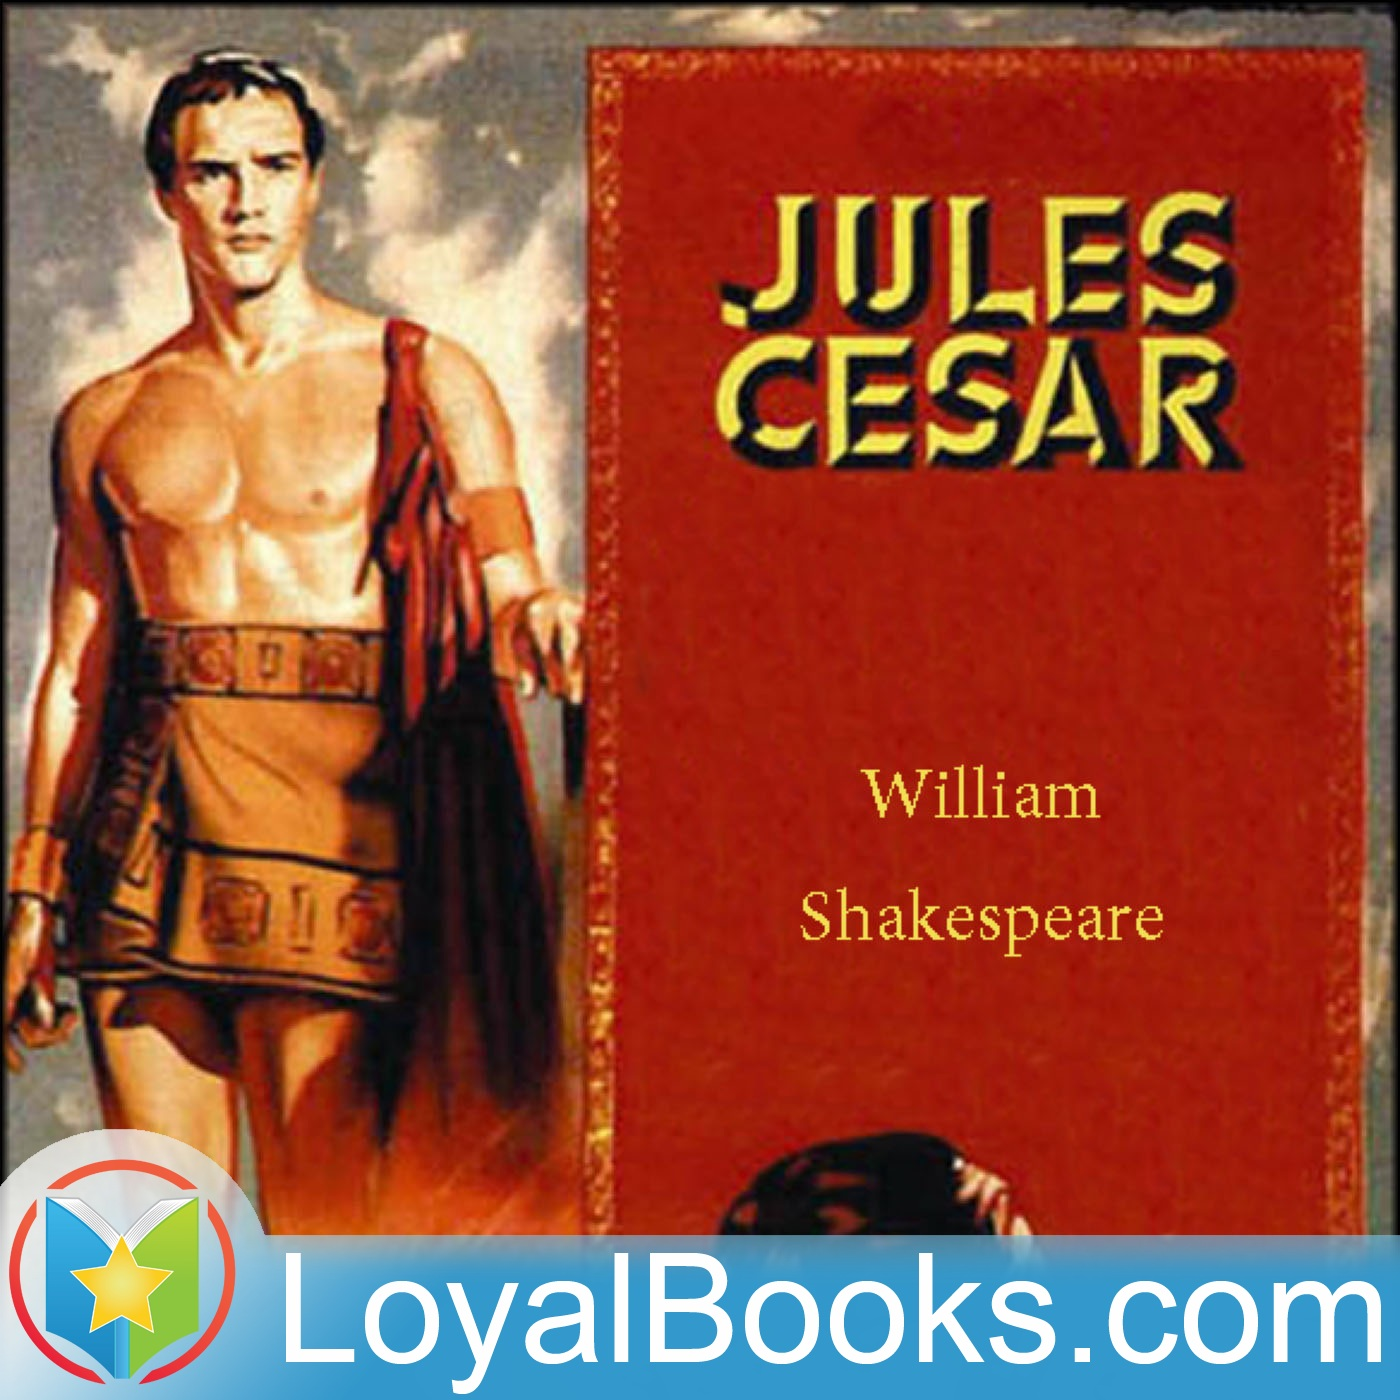 a literary analysis of the life of a roman person in the play julius caesar by william shakespeare A crowd of people among them artemidorus and the soothsayer flourish enter caesar, brutus, cassius, casca, decius brutus, metellus cimber, trebonius, cinna, antony, lepidus, popilius, publius, and others caesar [to the soothsayer] the ides of march are come soothsayer ay, caesar but not.